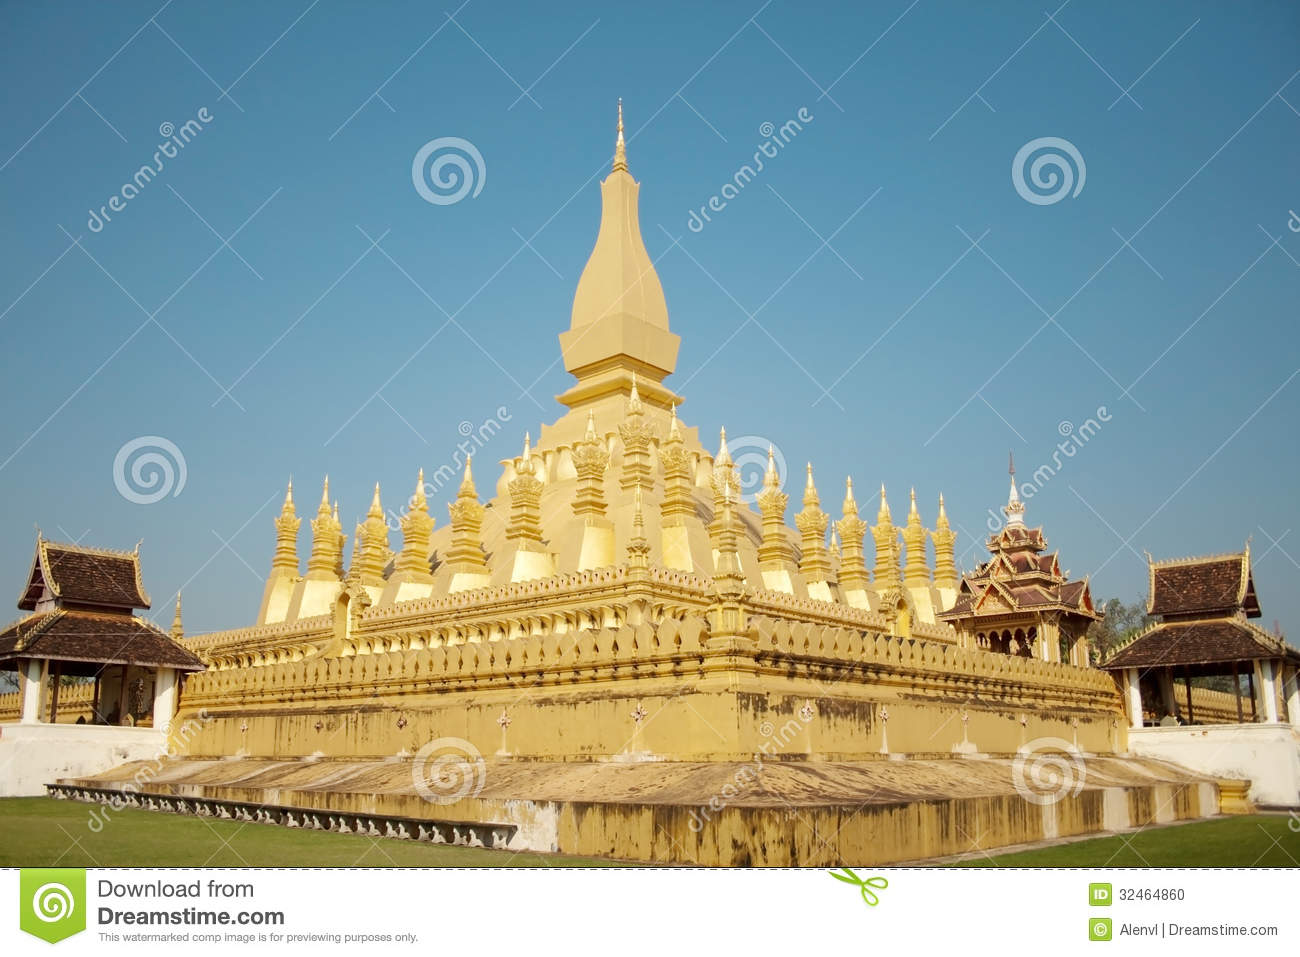 Wat Thap Luang in Vientiane, Laos on blue sky background.